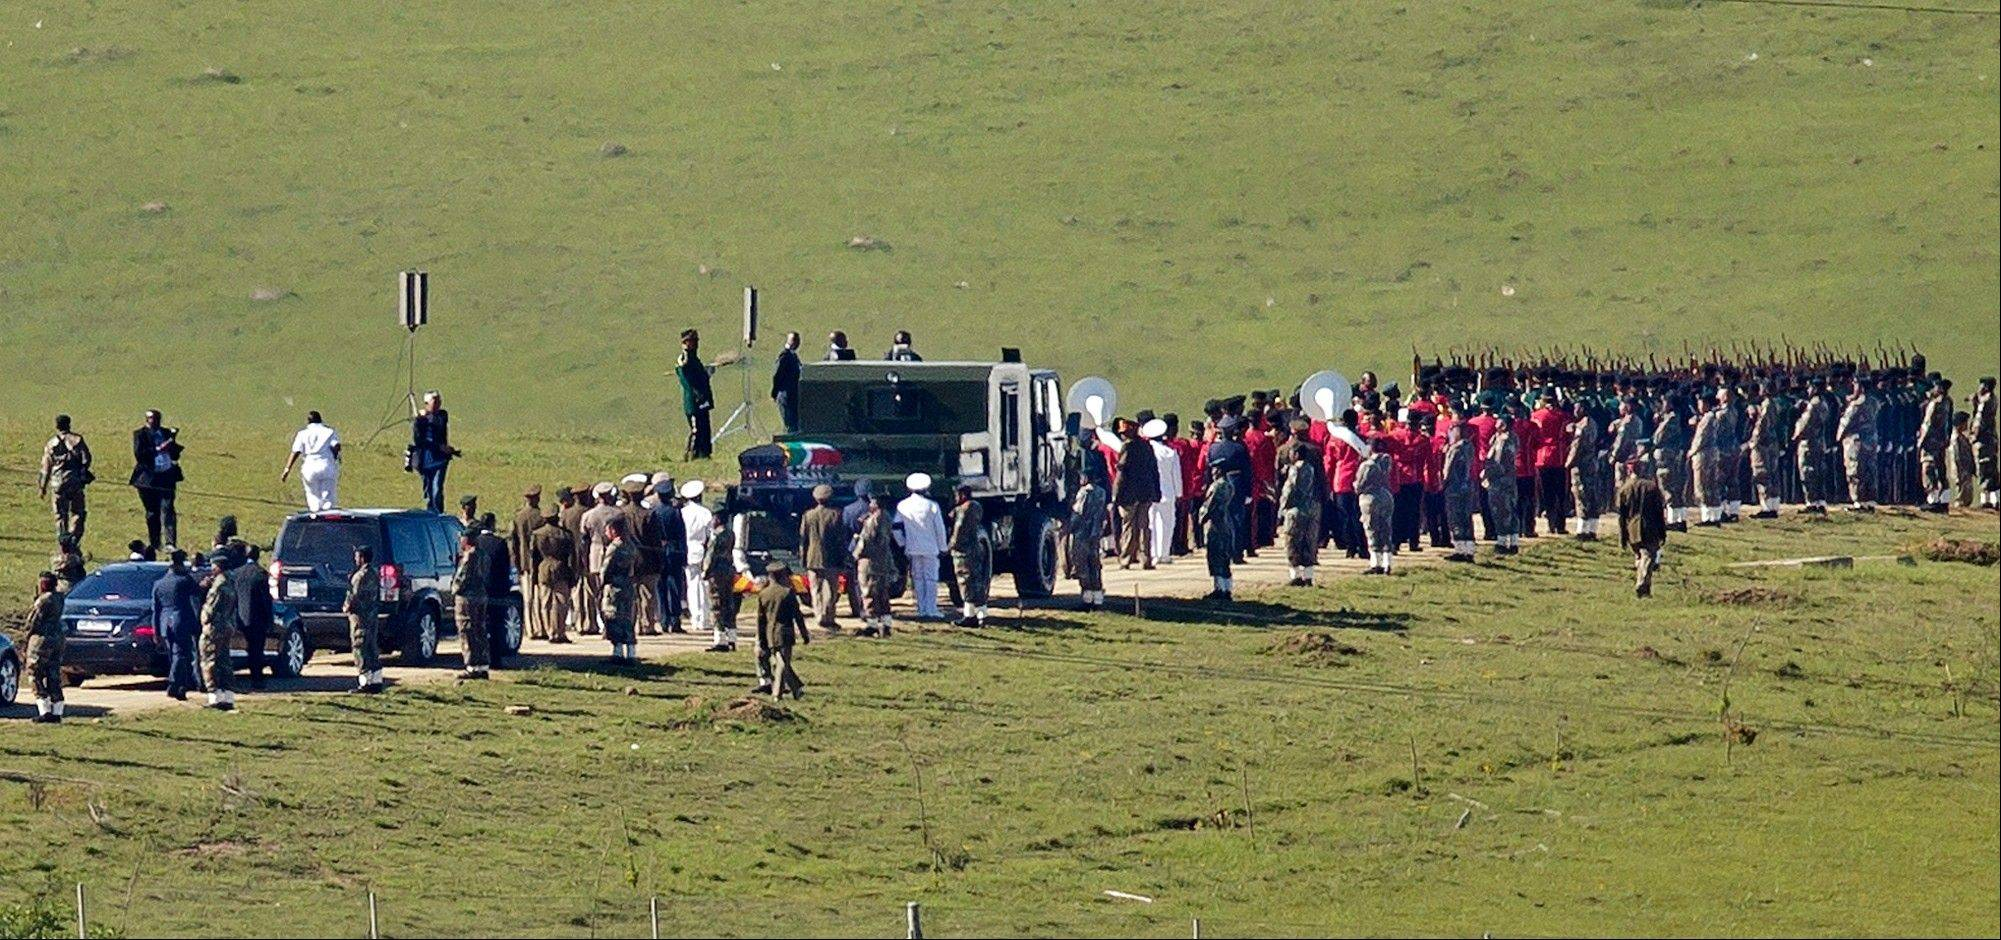 The casket of Nelson Mandela is brought in a military parade on a gun carriage from the family home to the funeral tent, prior to his burial, in Qunu, South Africa Sunday, Dec. 15, 2013.